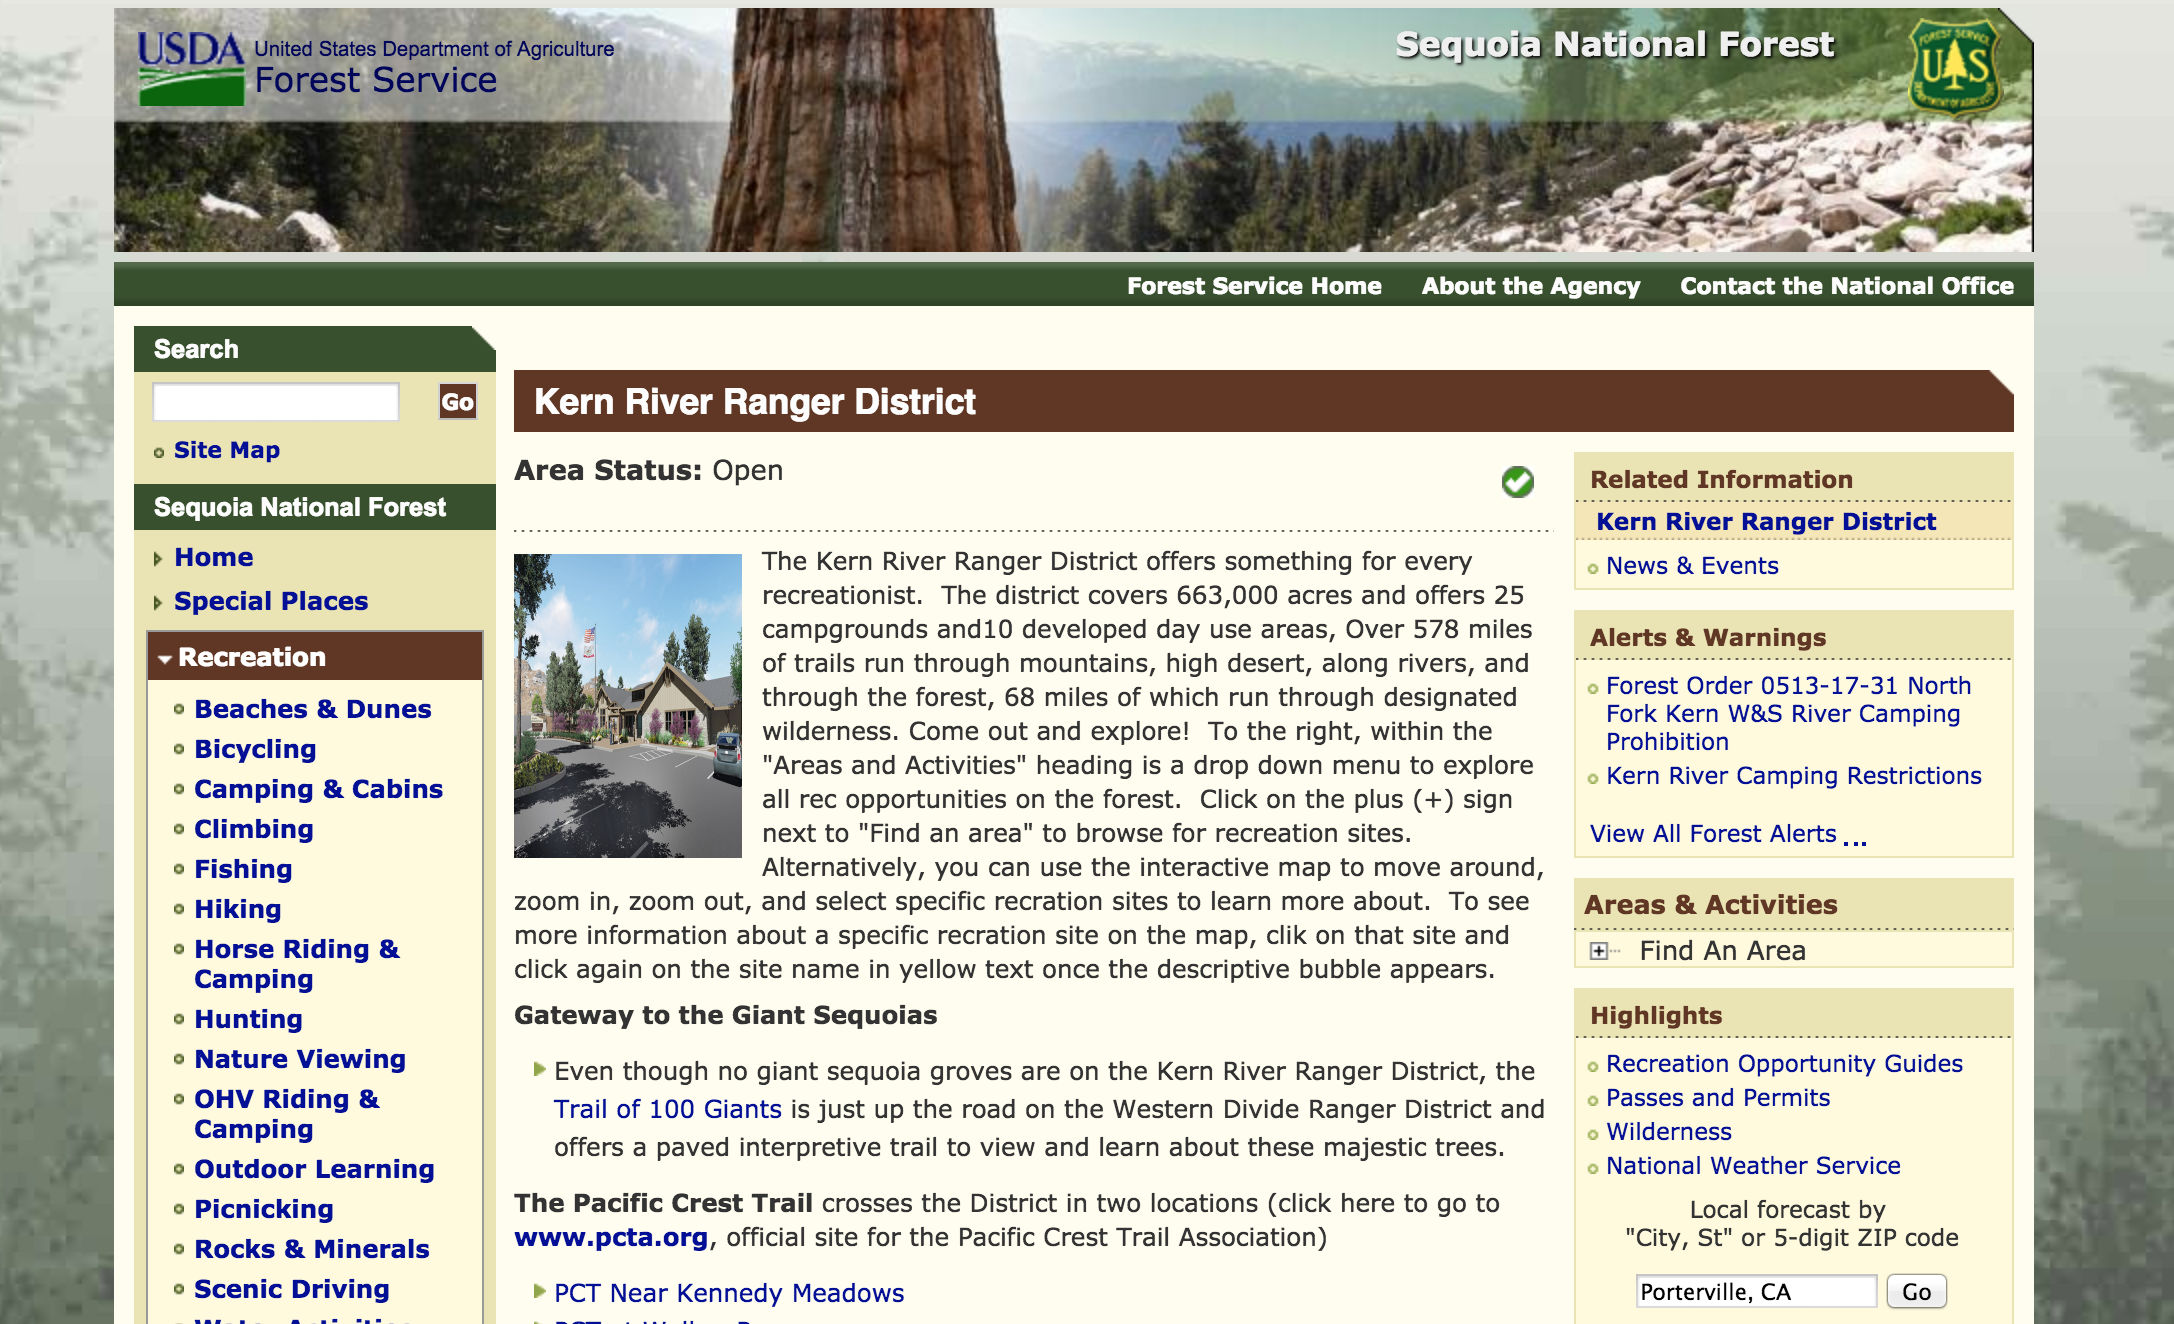 USDA FOREST SERVICE - We started by just searching the National Park we wanted to visit (Sequoia National Forest). It lead us to the USDA website where there was information on each National Park. We looked at each area in Sequoia before settling on the Kern River Ranger District.